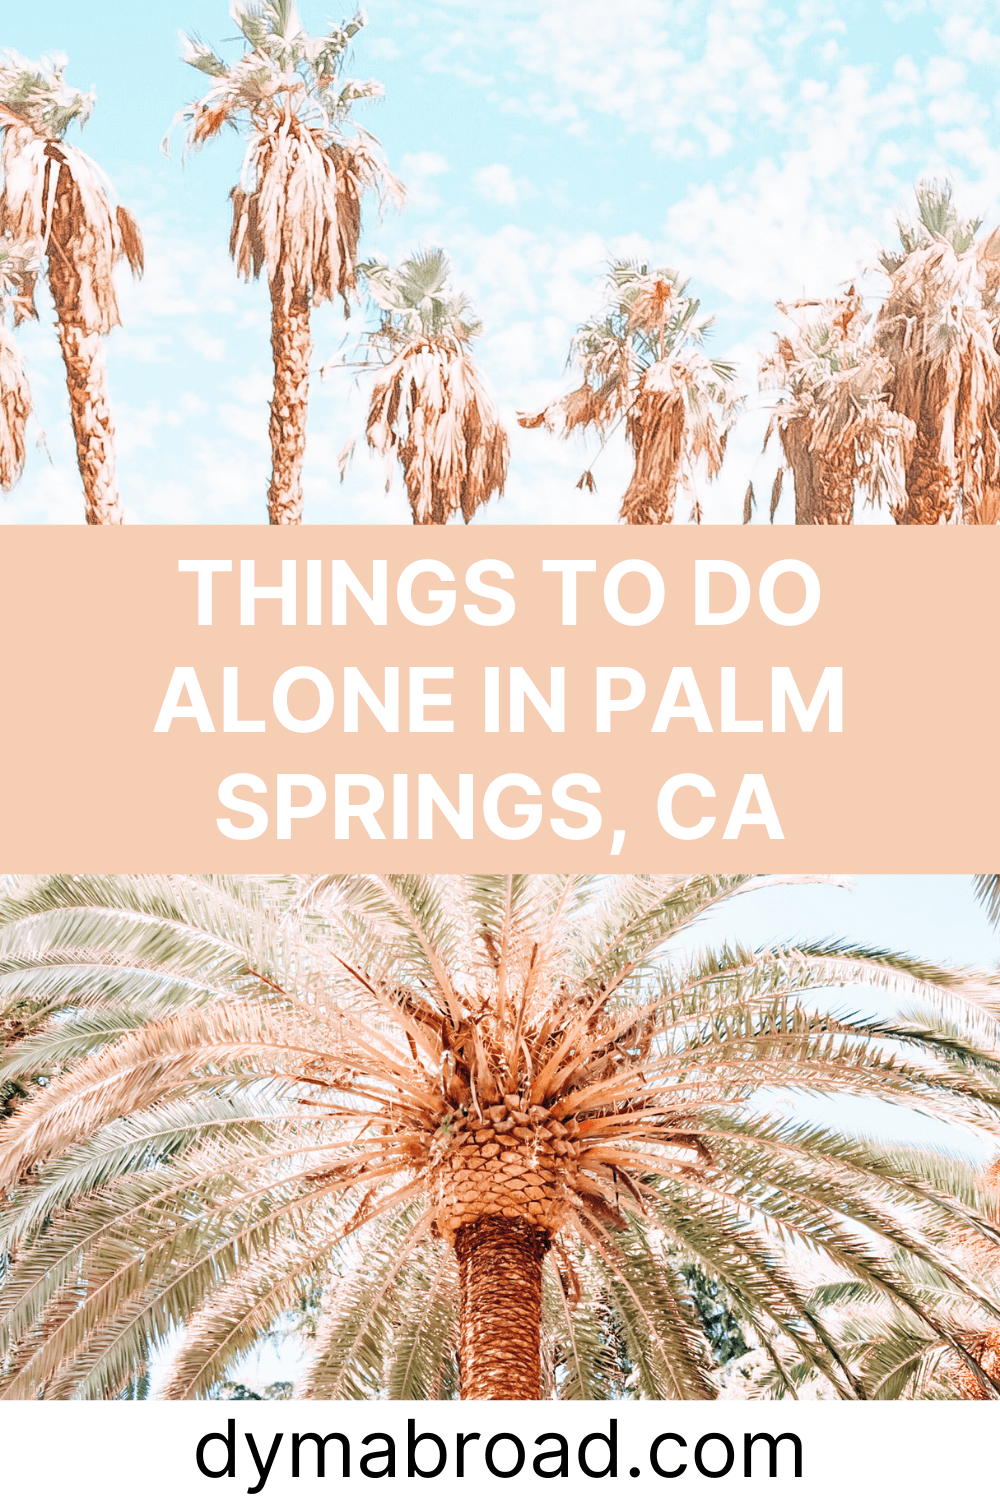 Things to do alone in Palm Springs second Pinterest image